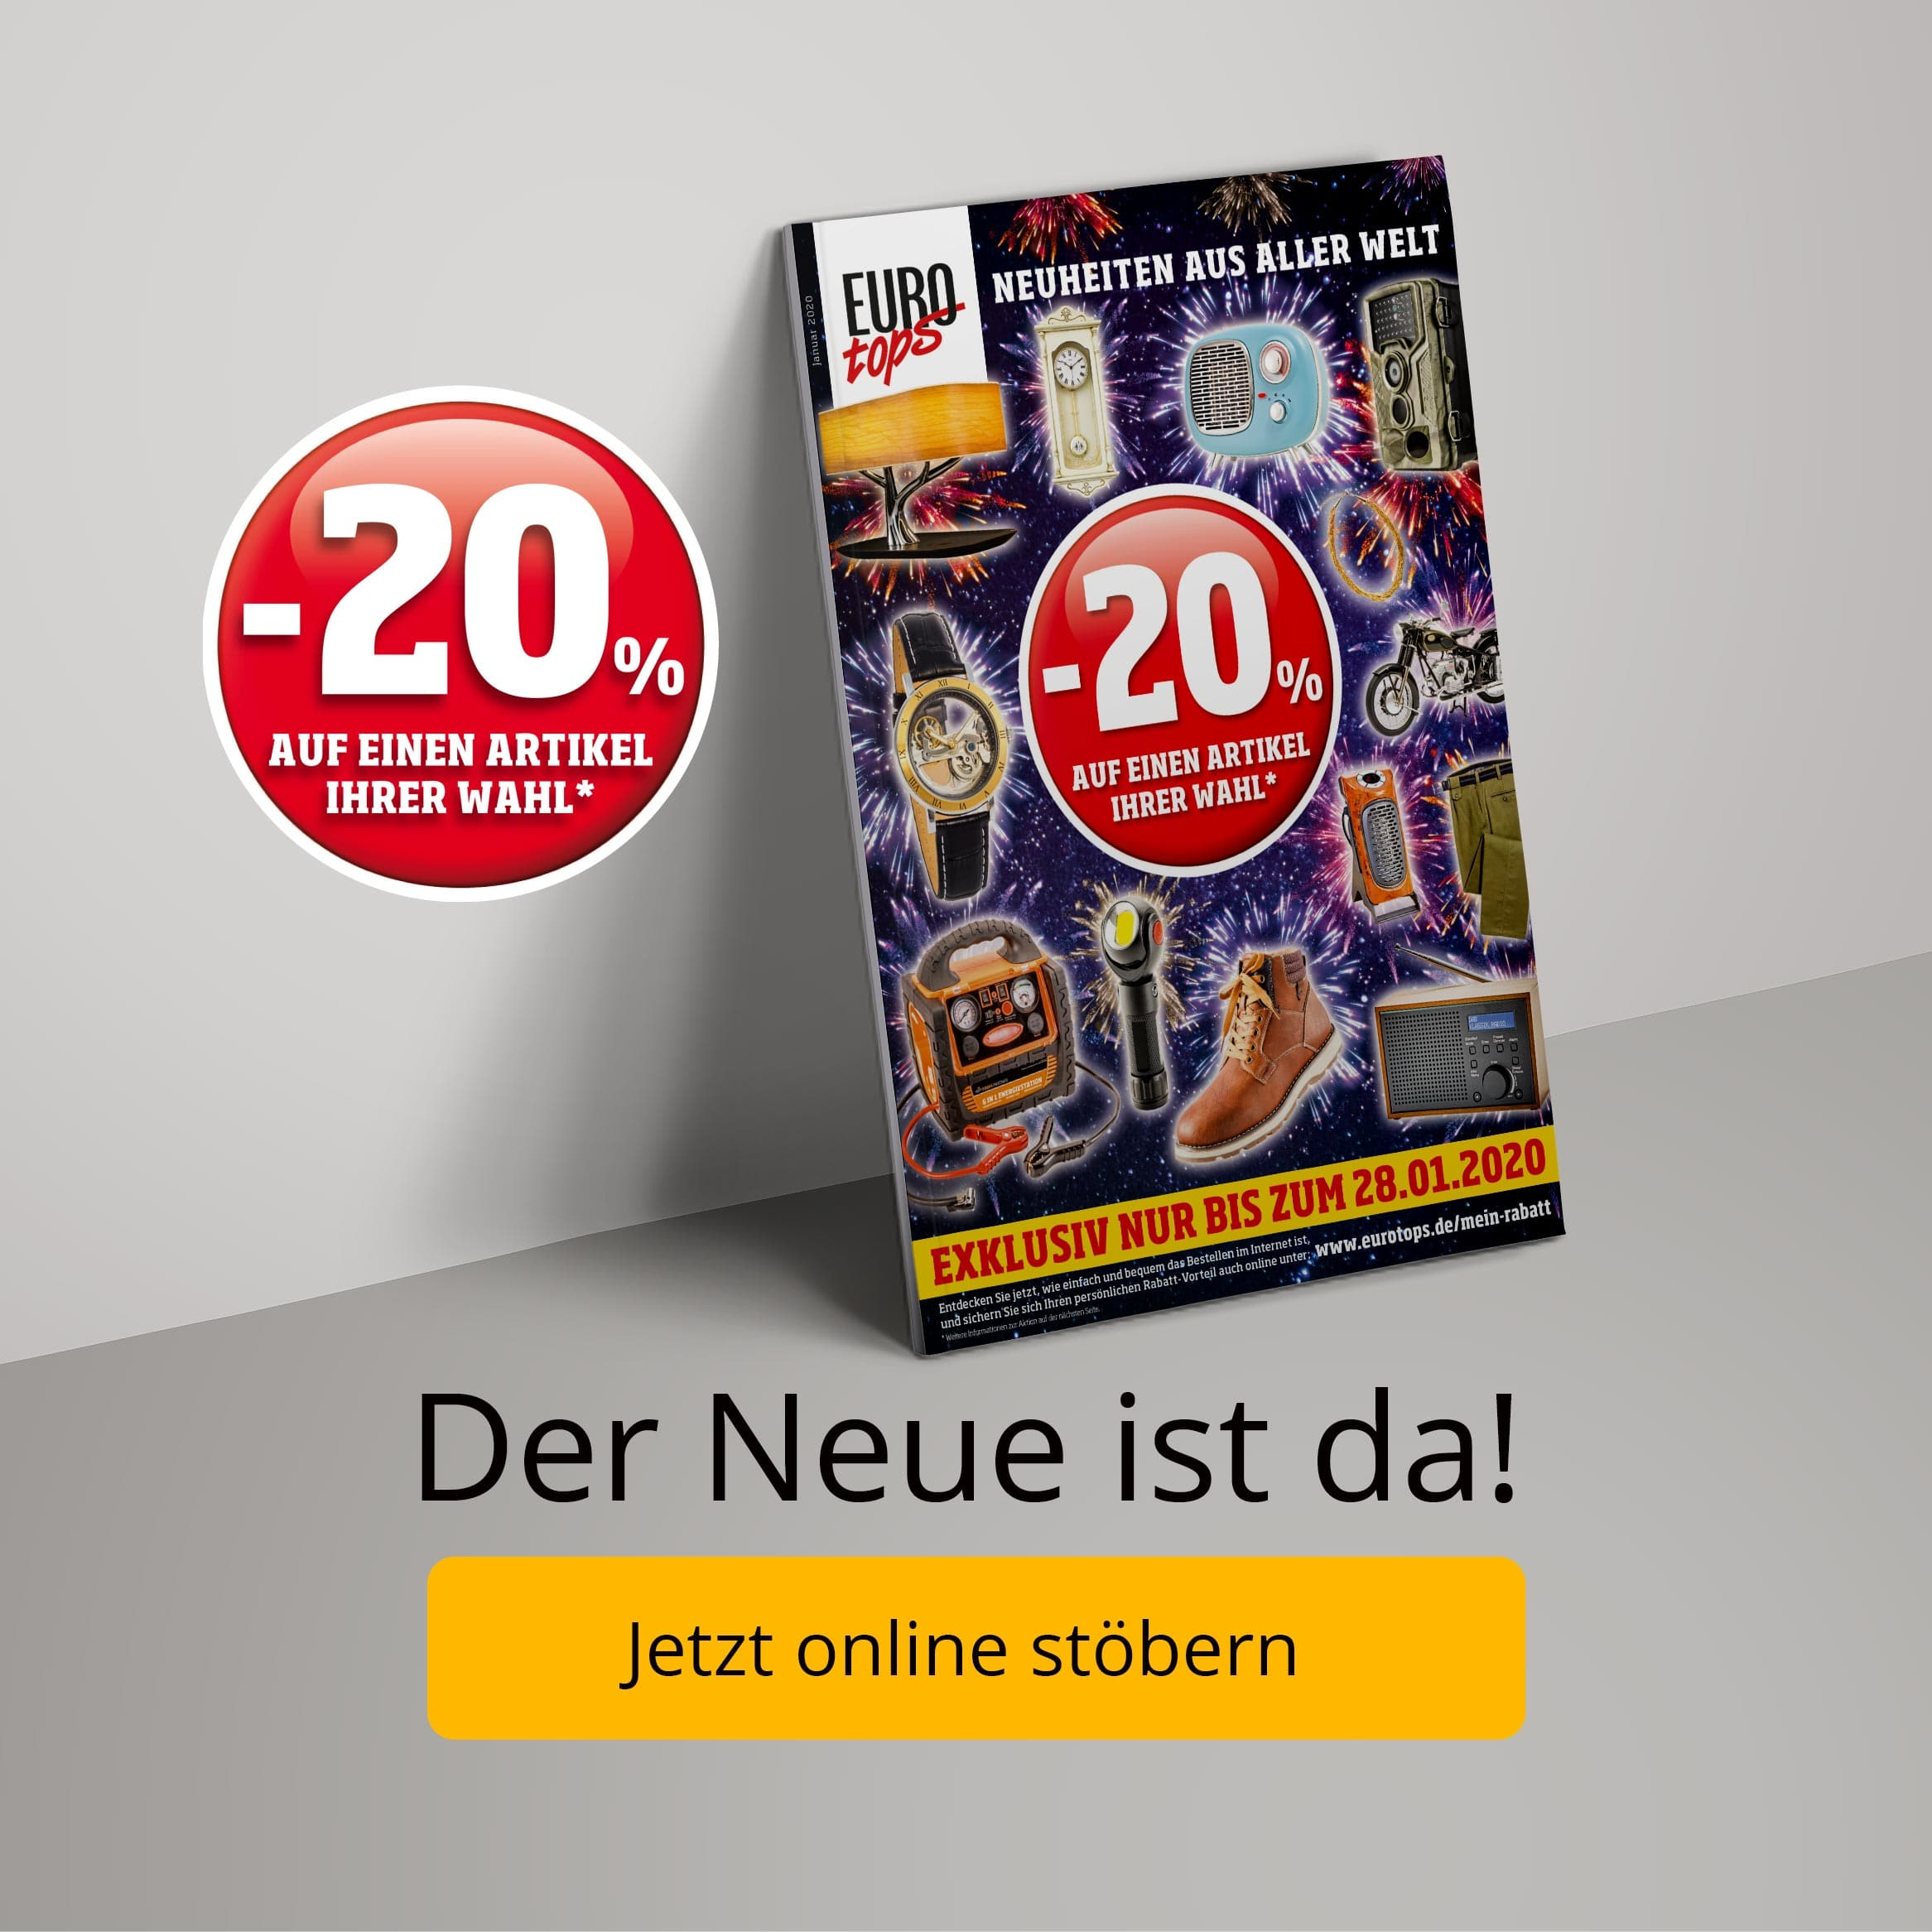 Aktuelle Katalog-Highlights